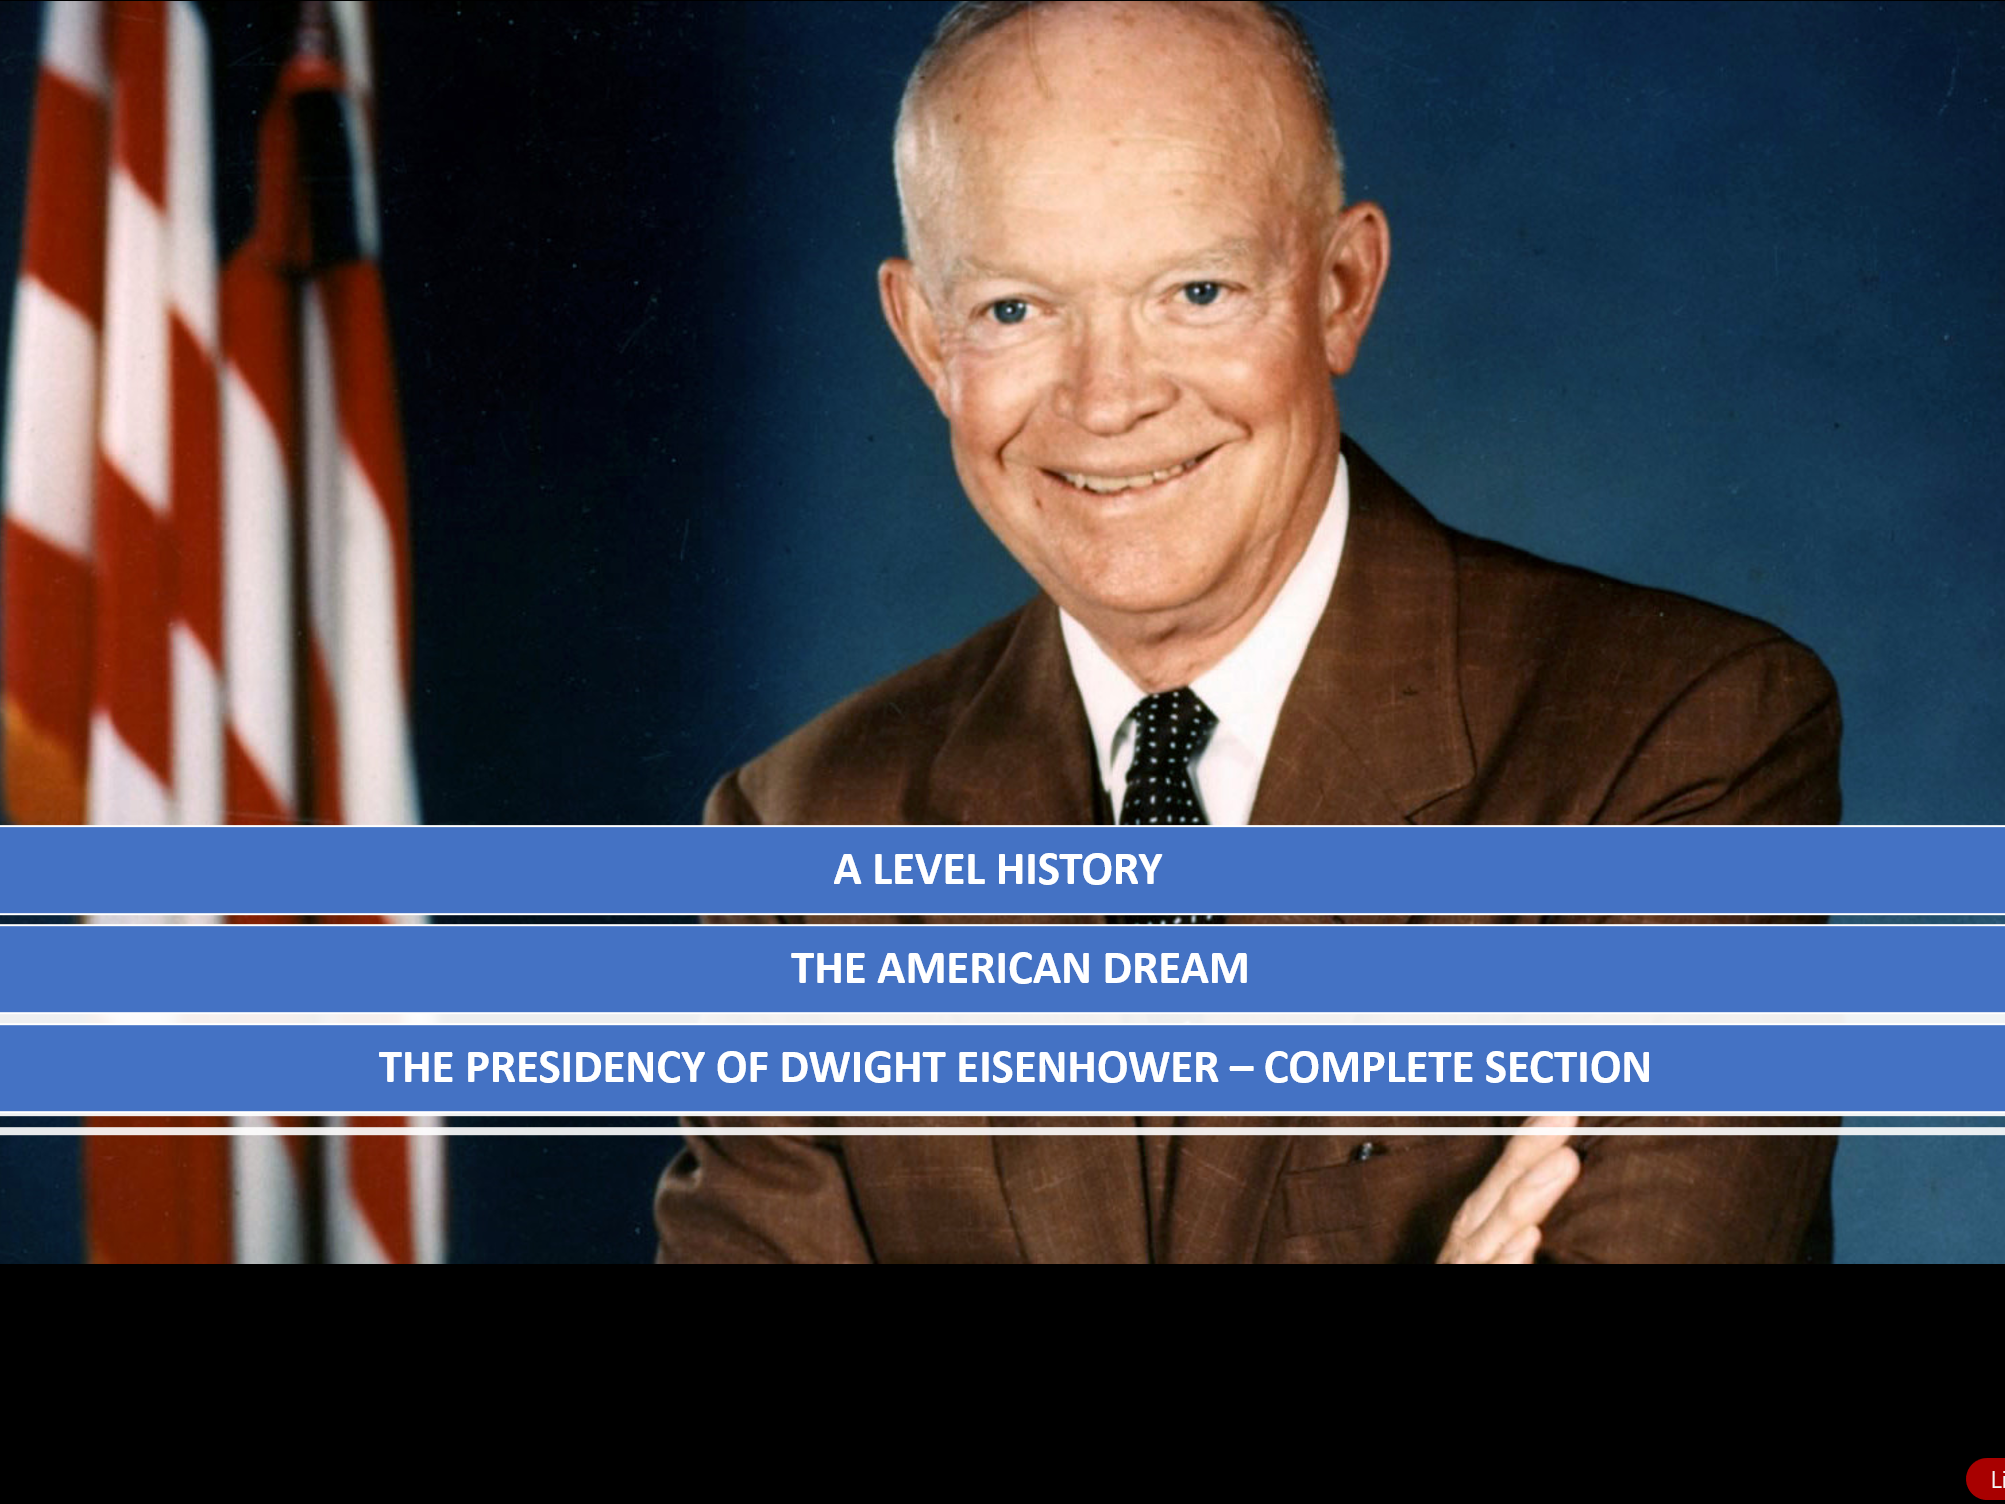 A LEVEL - THE PRESIDENCY OF DWIGHT EISENHOWER.